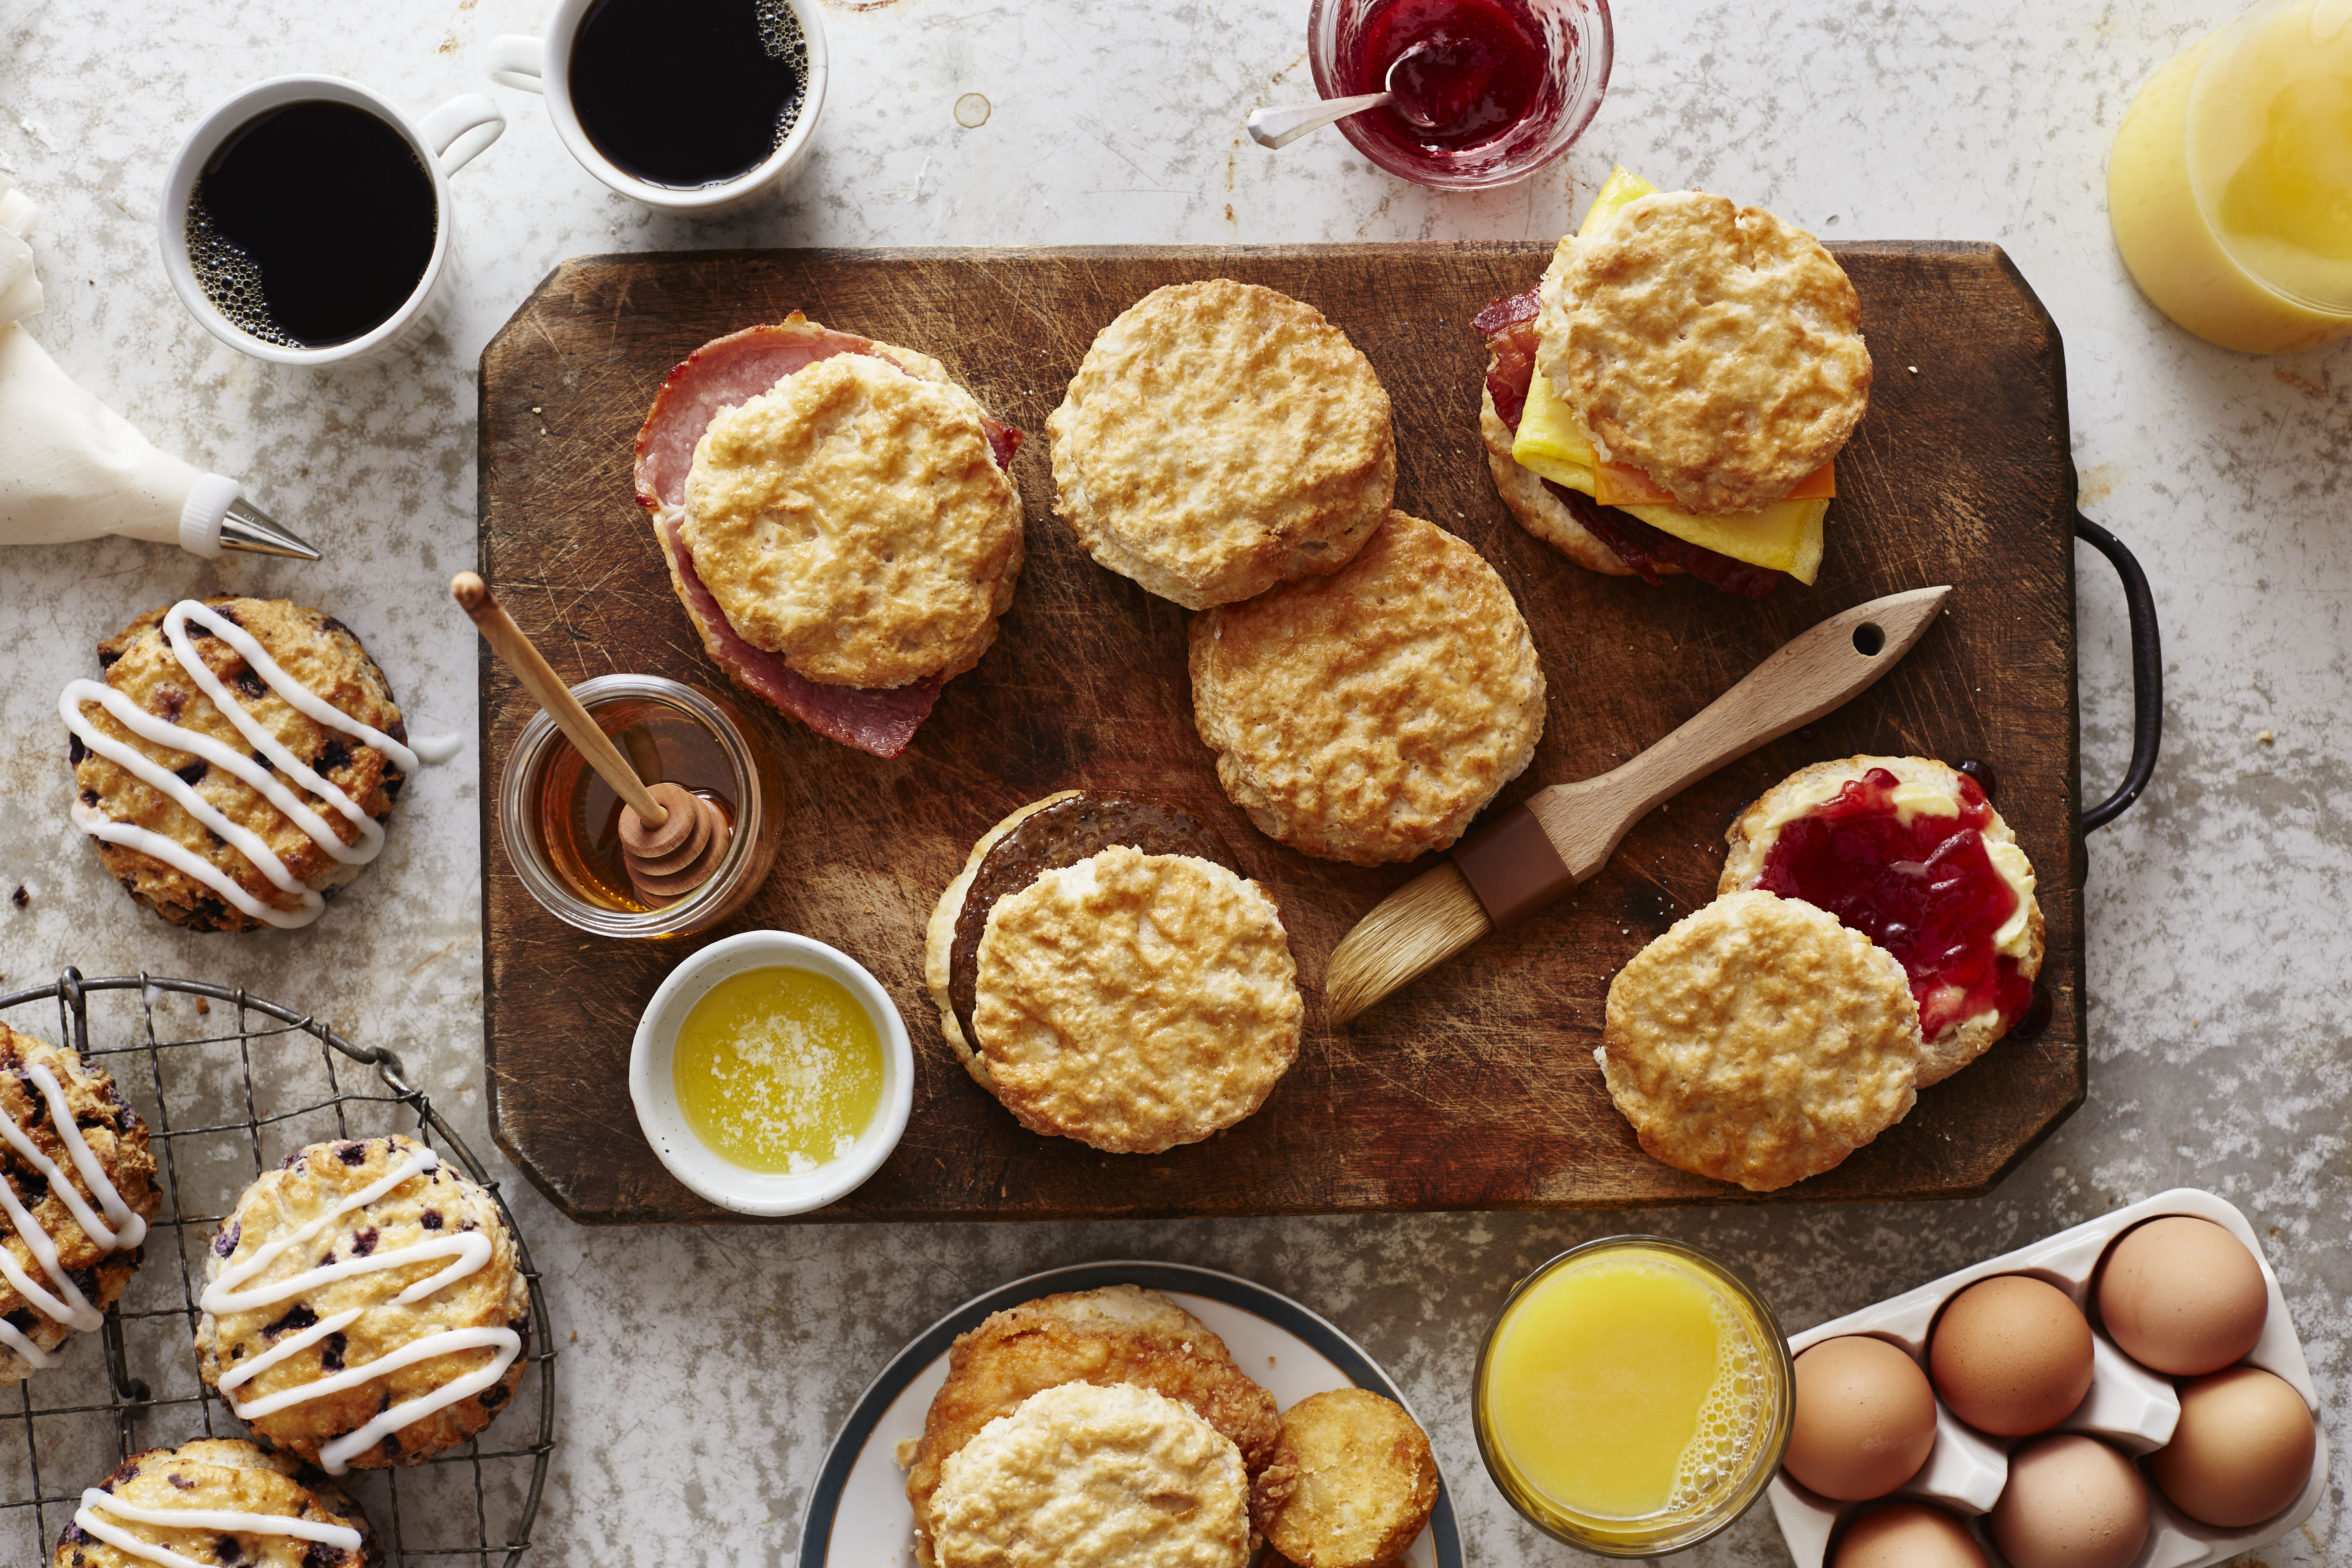 The Bojangles' made-from-scratch buttermilk biscuit, made hot and fresh every 20 minutes, is a true icon of the Southeast. (Photo: Bojangles')